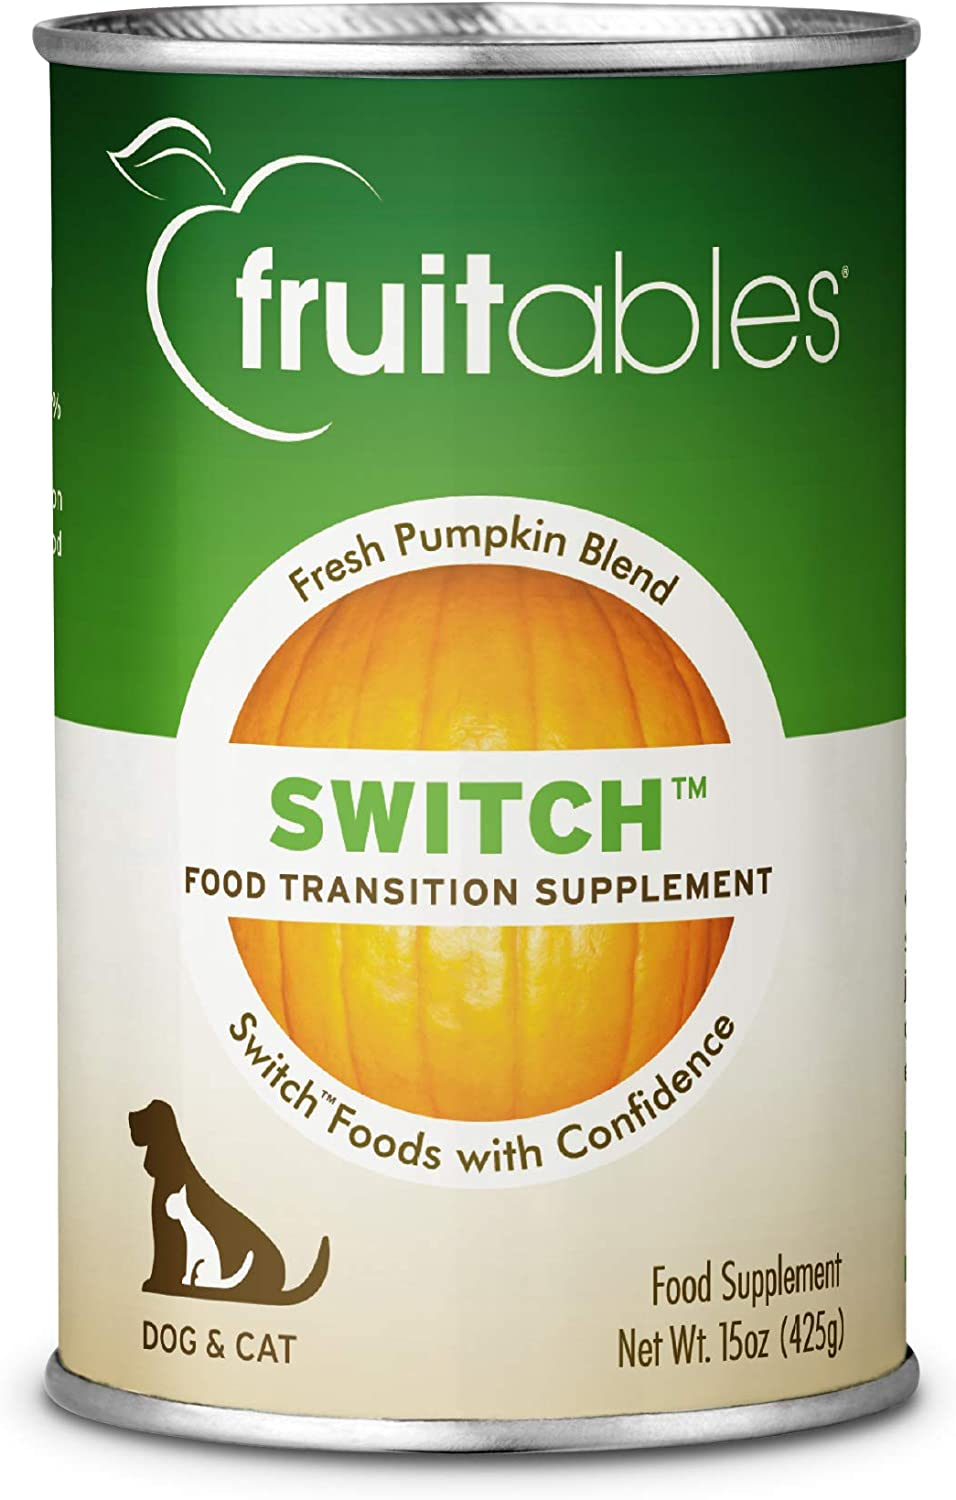 Fruitables Weight Loss Supplement for Dogs and Cats | Pumpkin and Oatmeal SuperBlend Food Supplement